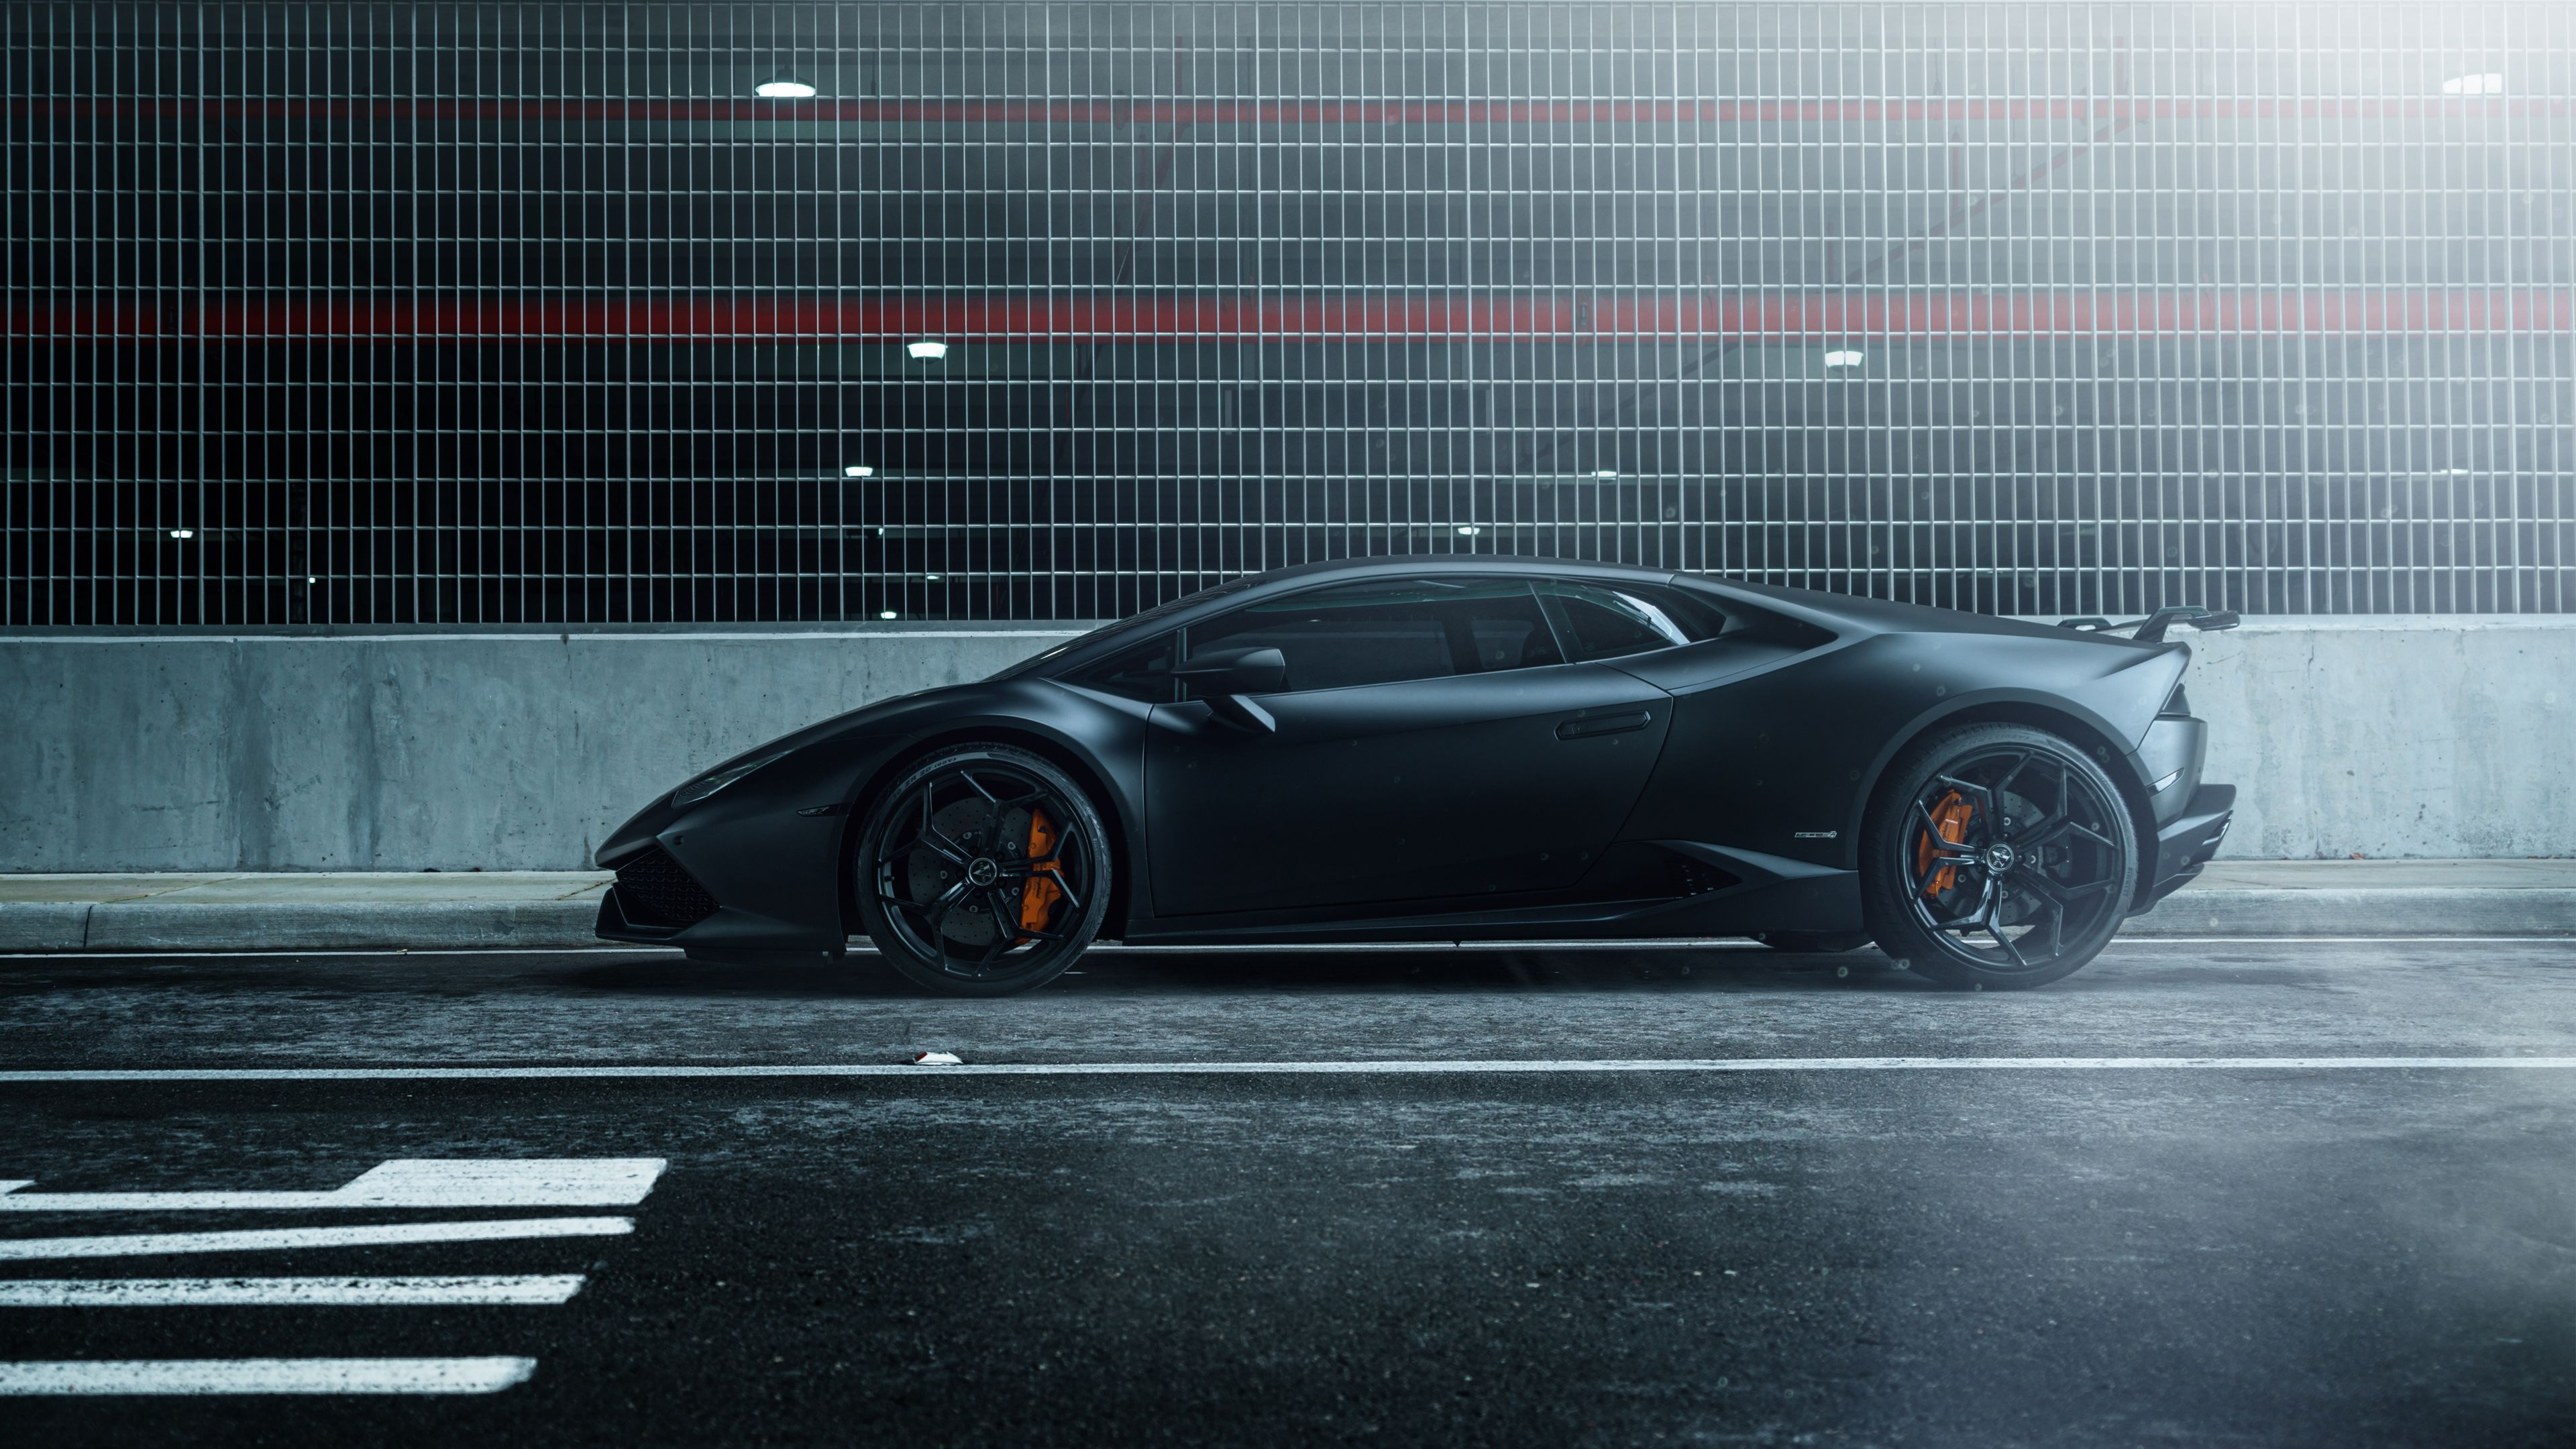 Lamborghini Huracan Wallpapers Full Hd